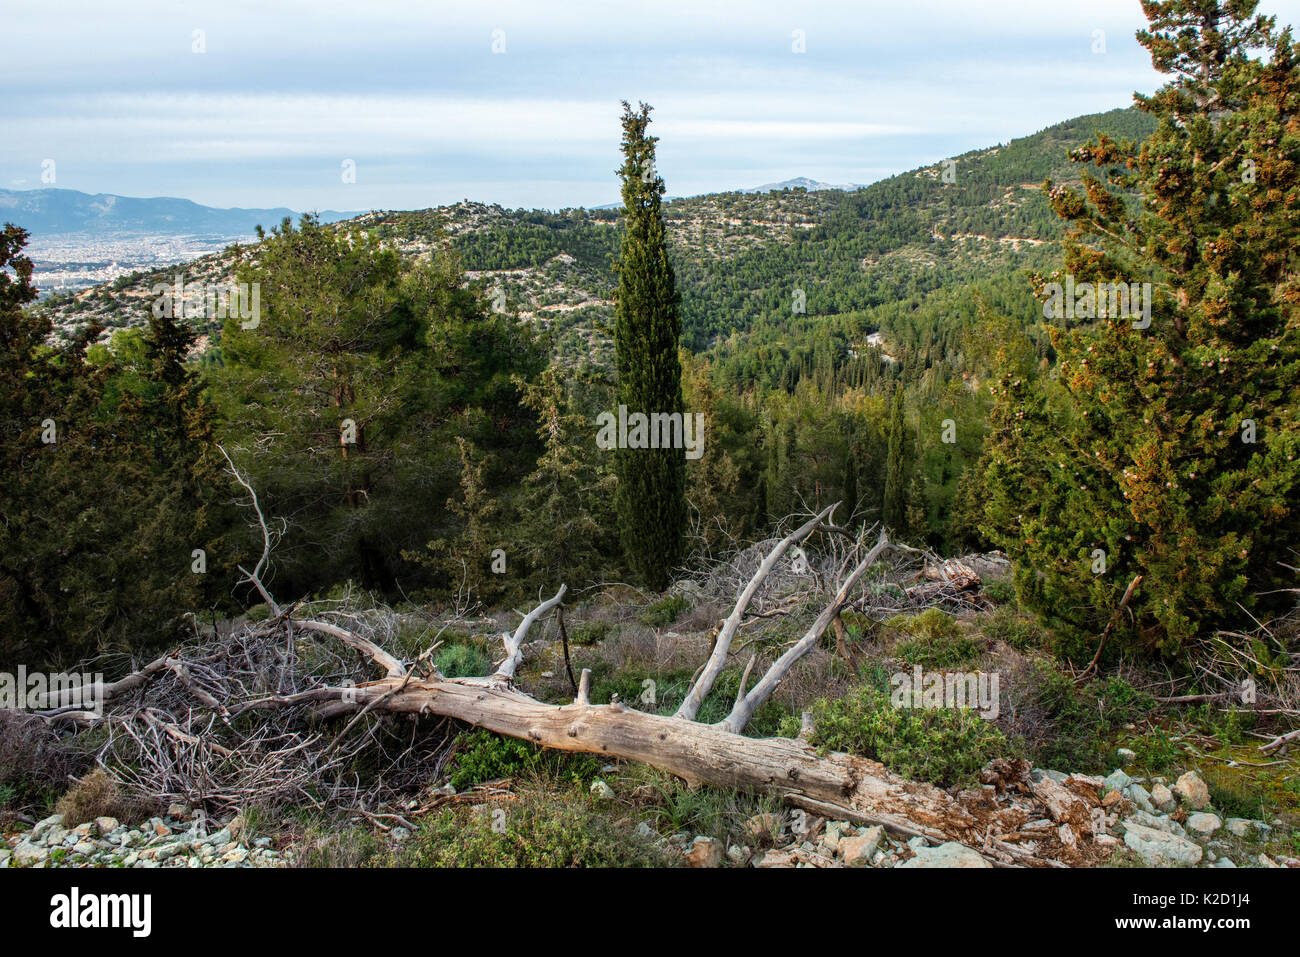 Landscape from  Mount Hymettus, Kessariani Aesthetic Forest, East-Central Attica, Greece, March 2015. - Stock Image